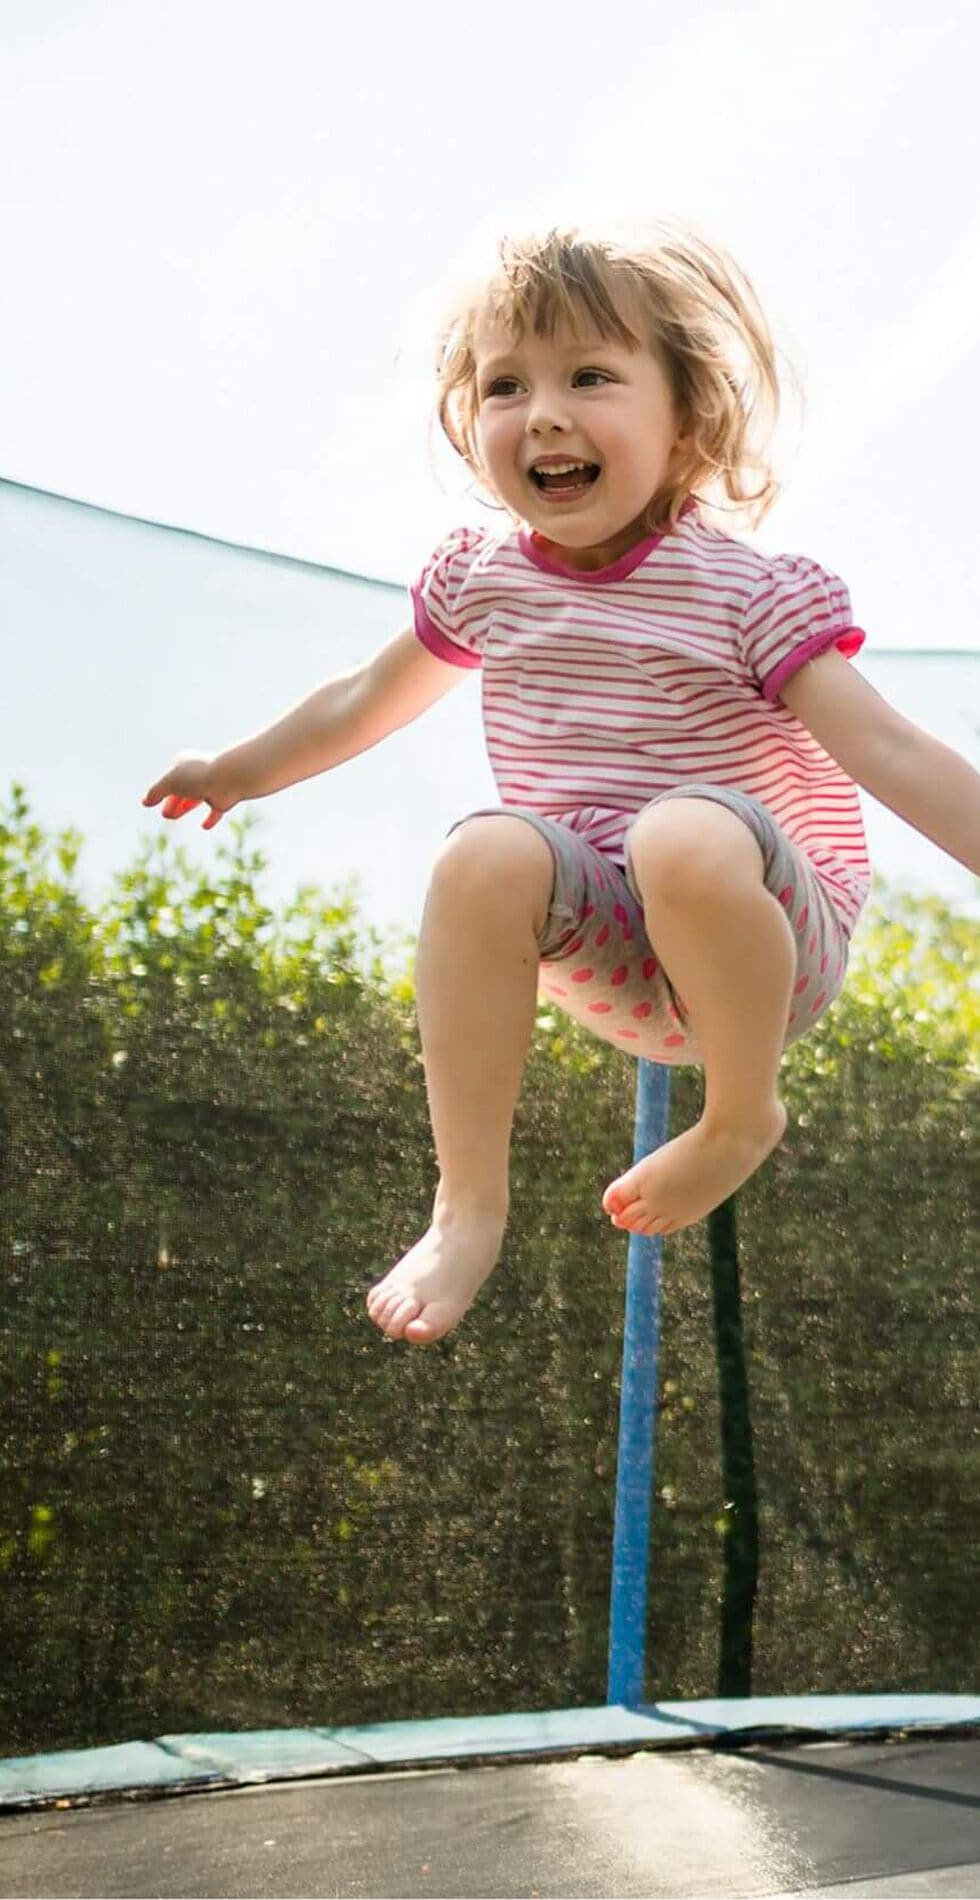 Child jumping on trampoline in backyard